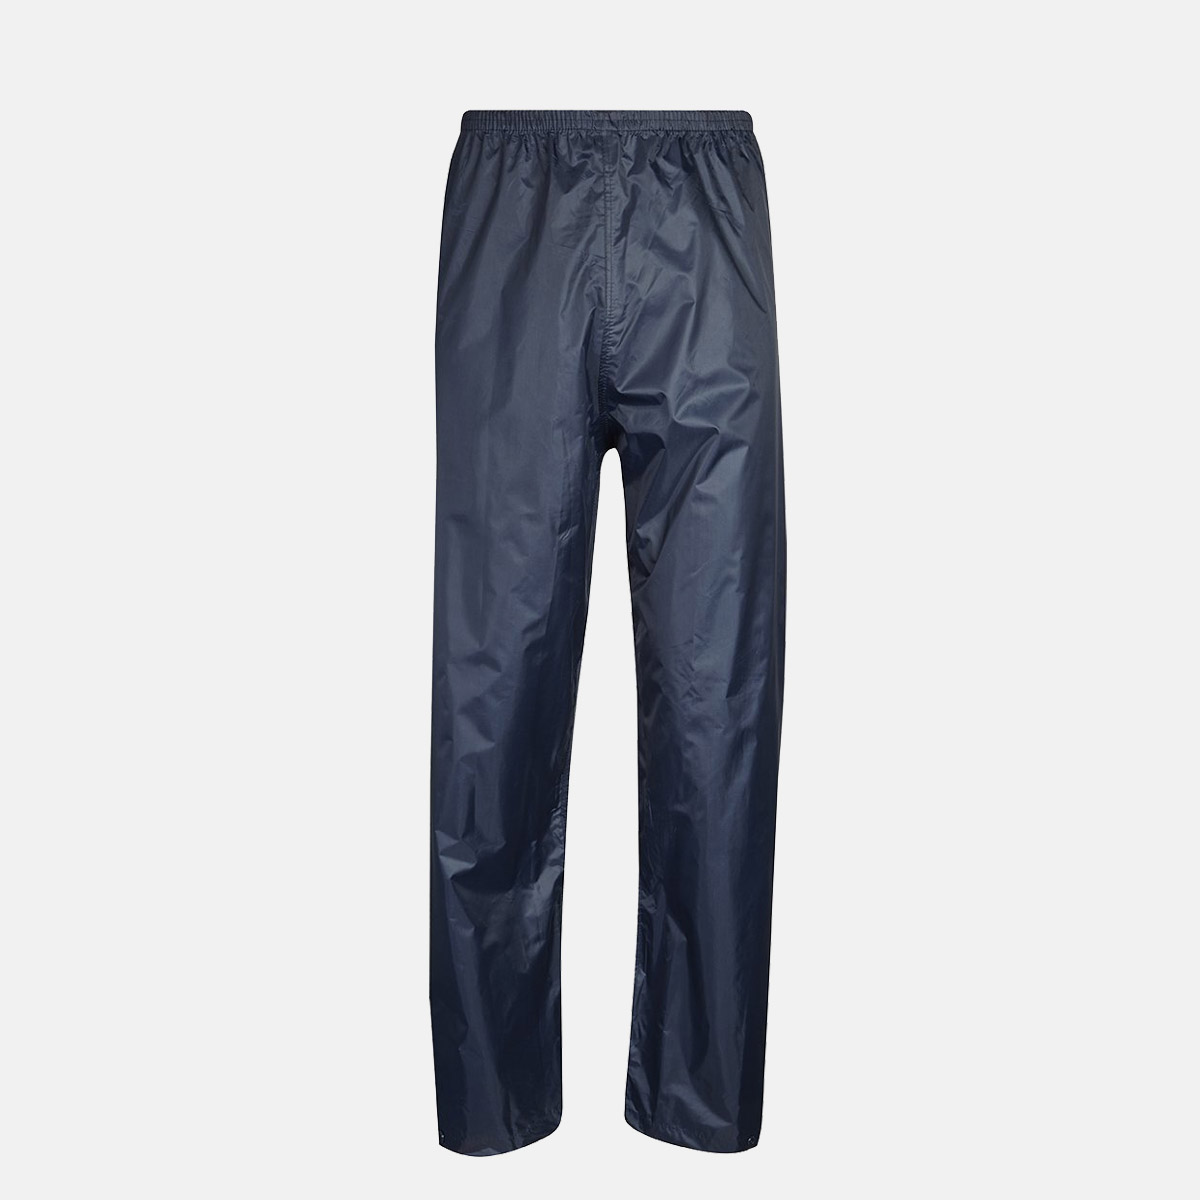 Adults Navy Blue Waterproof Over Trousers by Baum Country